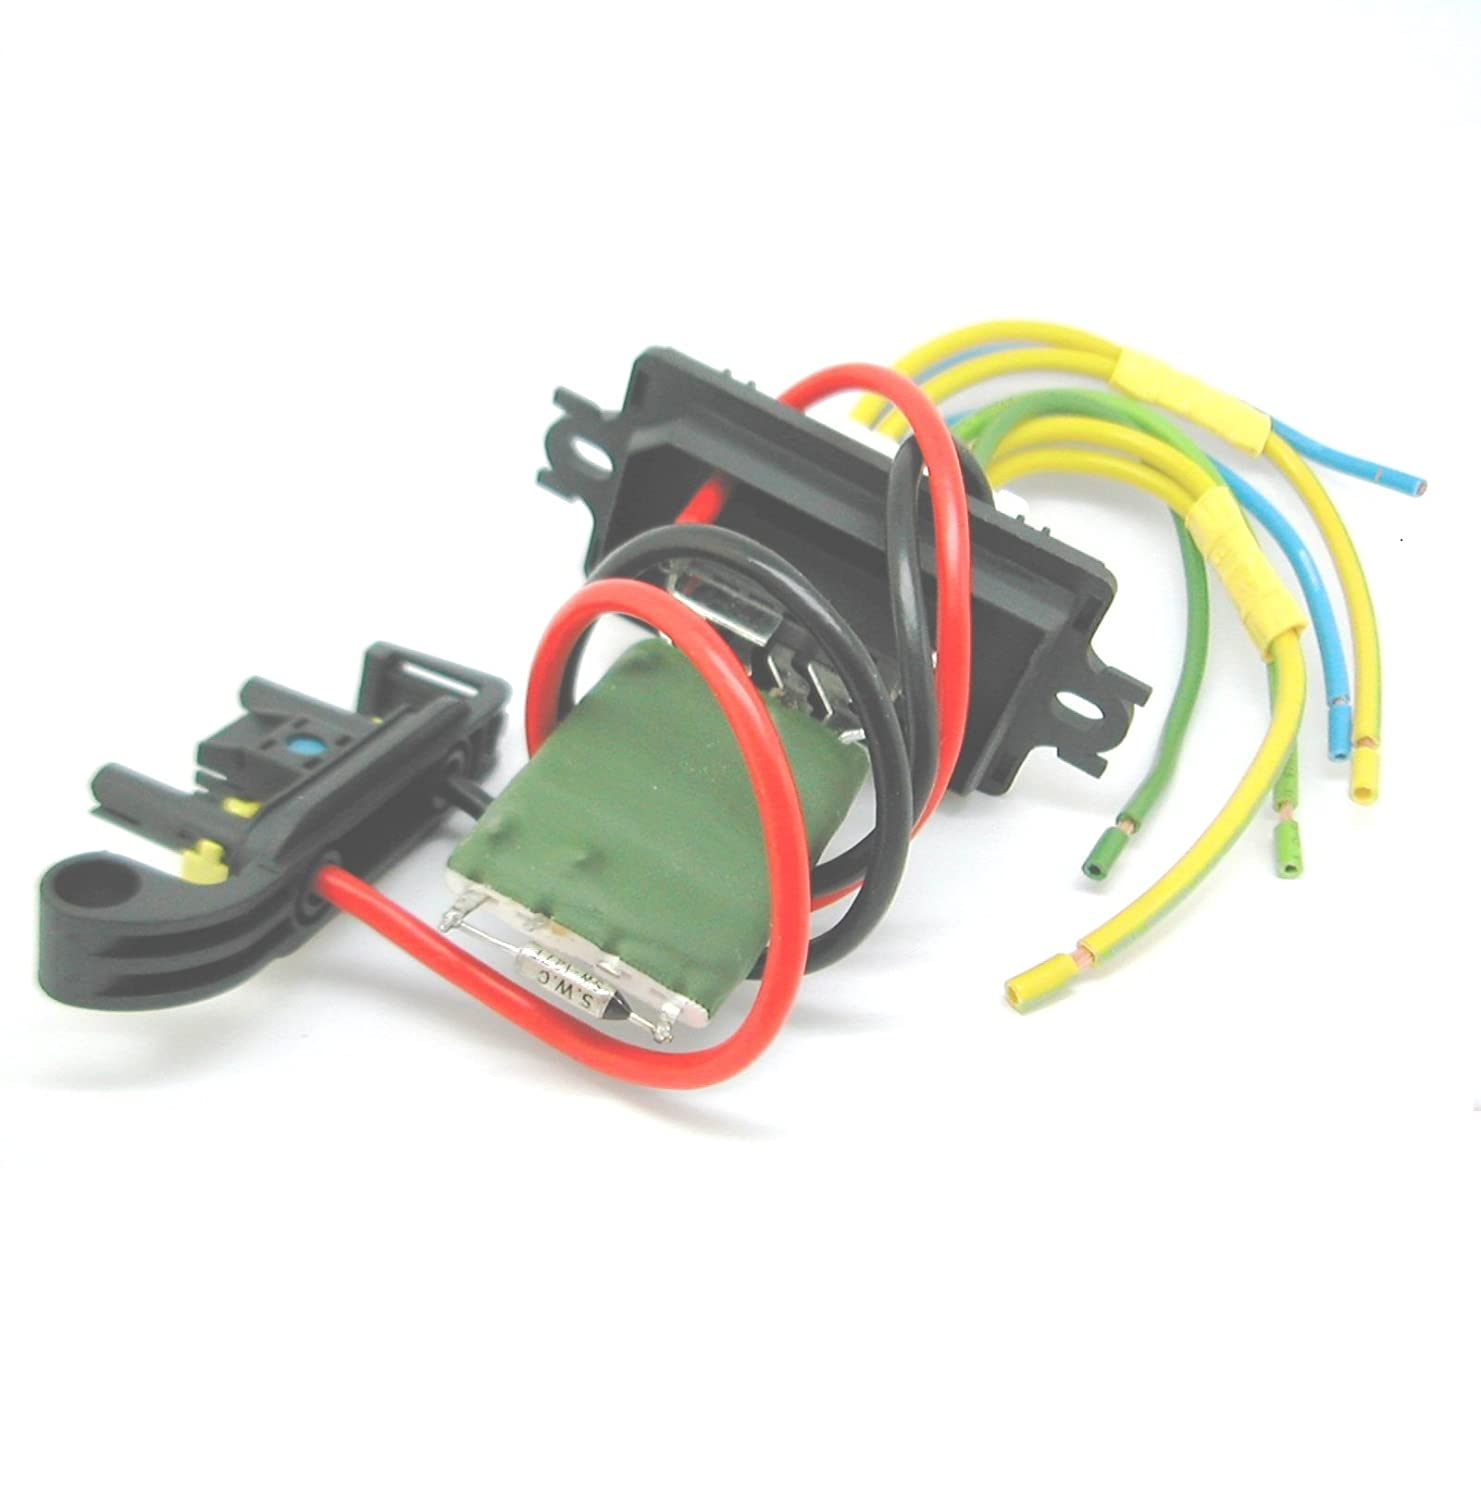 RENAULT MEGANE HEATER EXTENSION WIRING HARNESS 9 PIN CONNECTOR